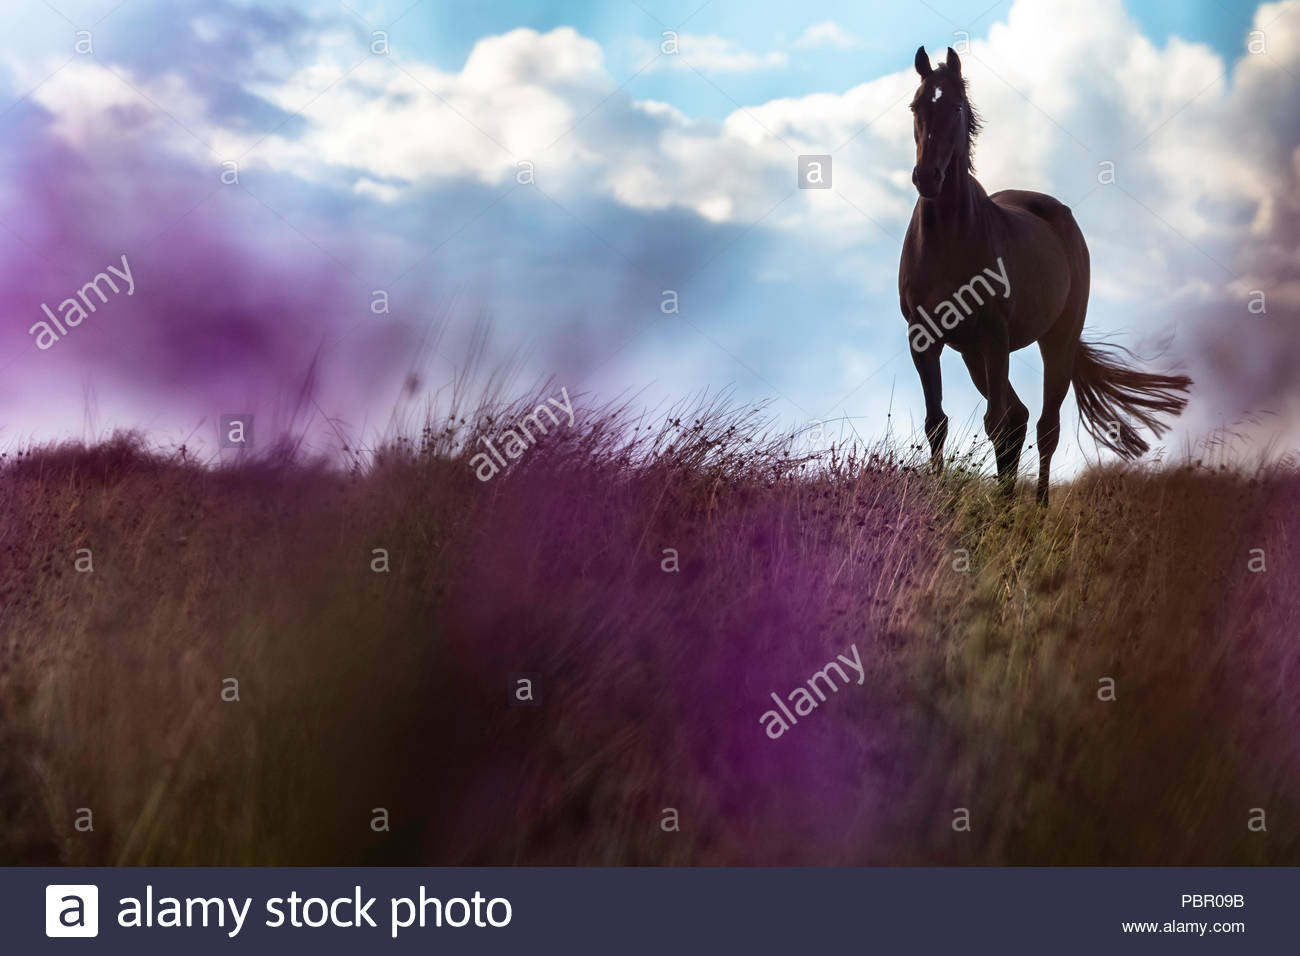 Camptown, Jedburgh, Scottish Borders, UK. 29th July 2018. A racehorse at national hunt trainers Harriet Graham's yard grazes on Riccalton Farm near the Anglo Scottish Border. Rain swept across the Borders over the weekend but temperatures remianed mild. Credit: Chris Strickland / Alamy Live News - Stock Image